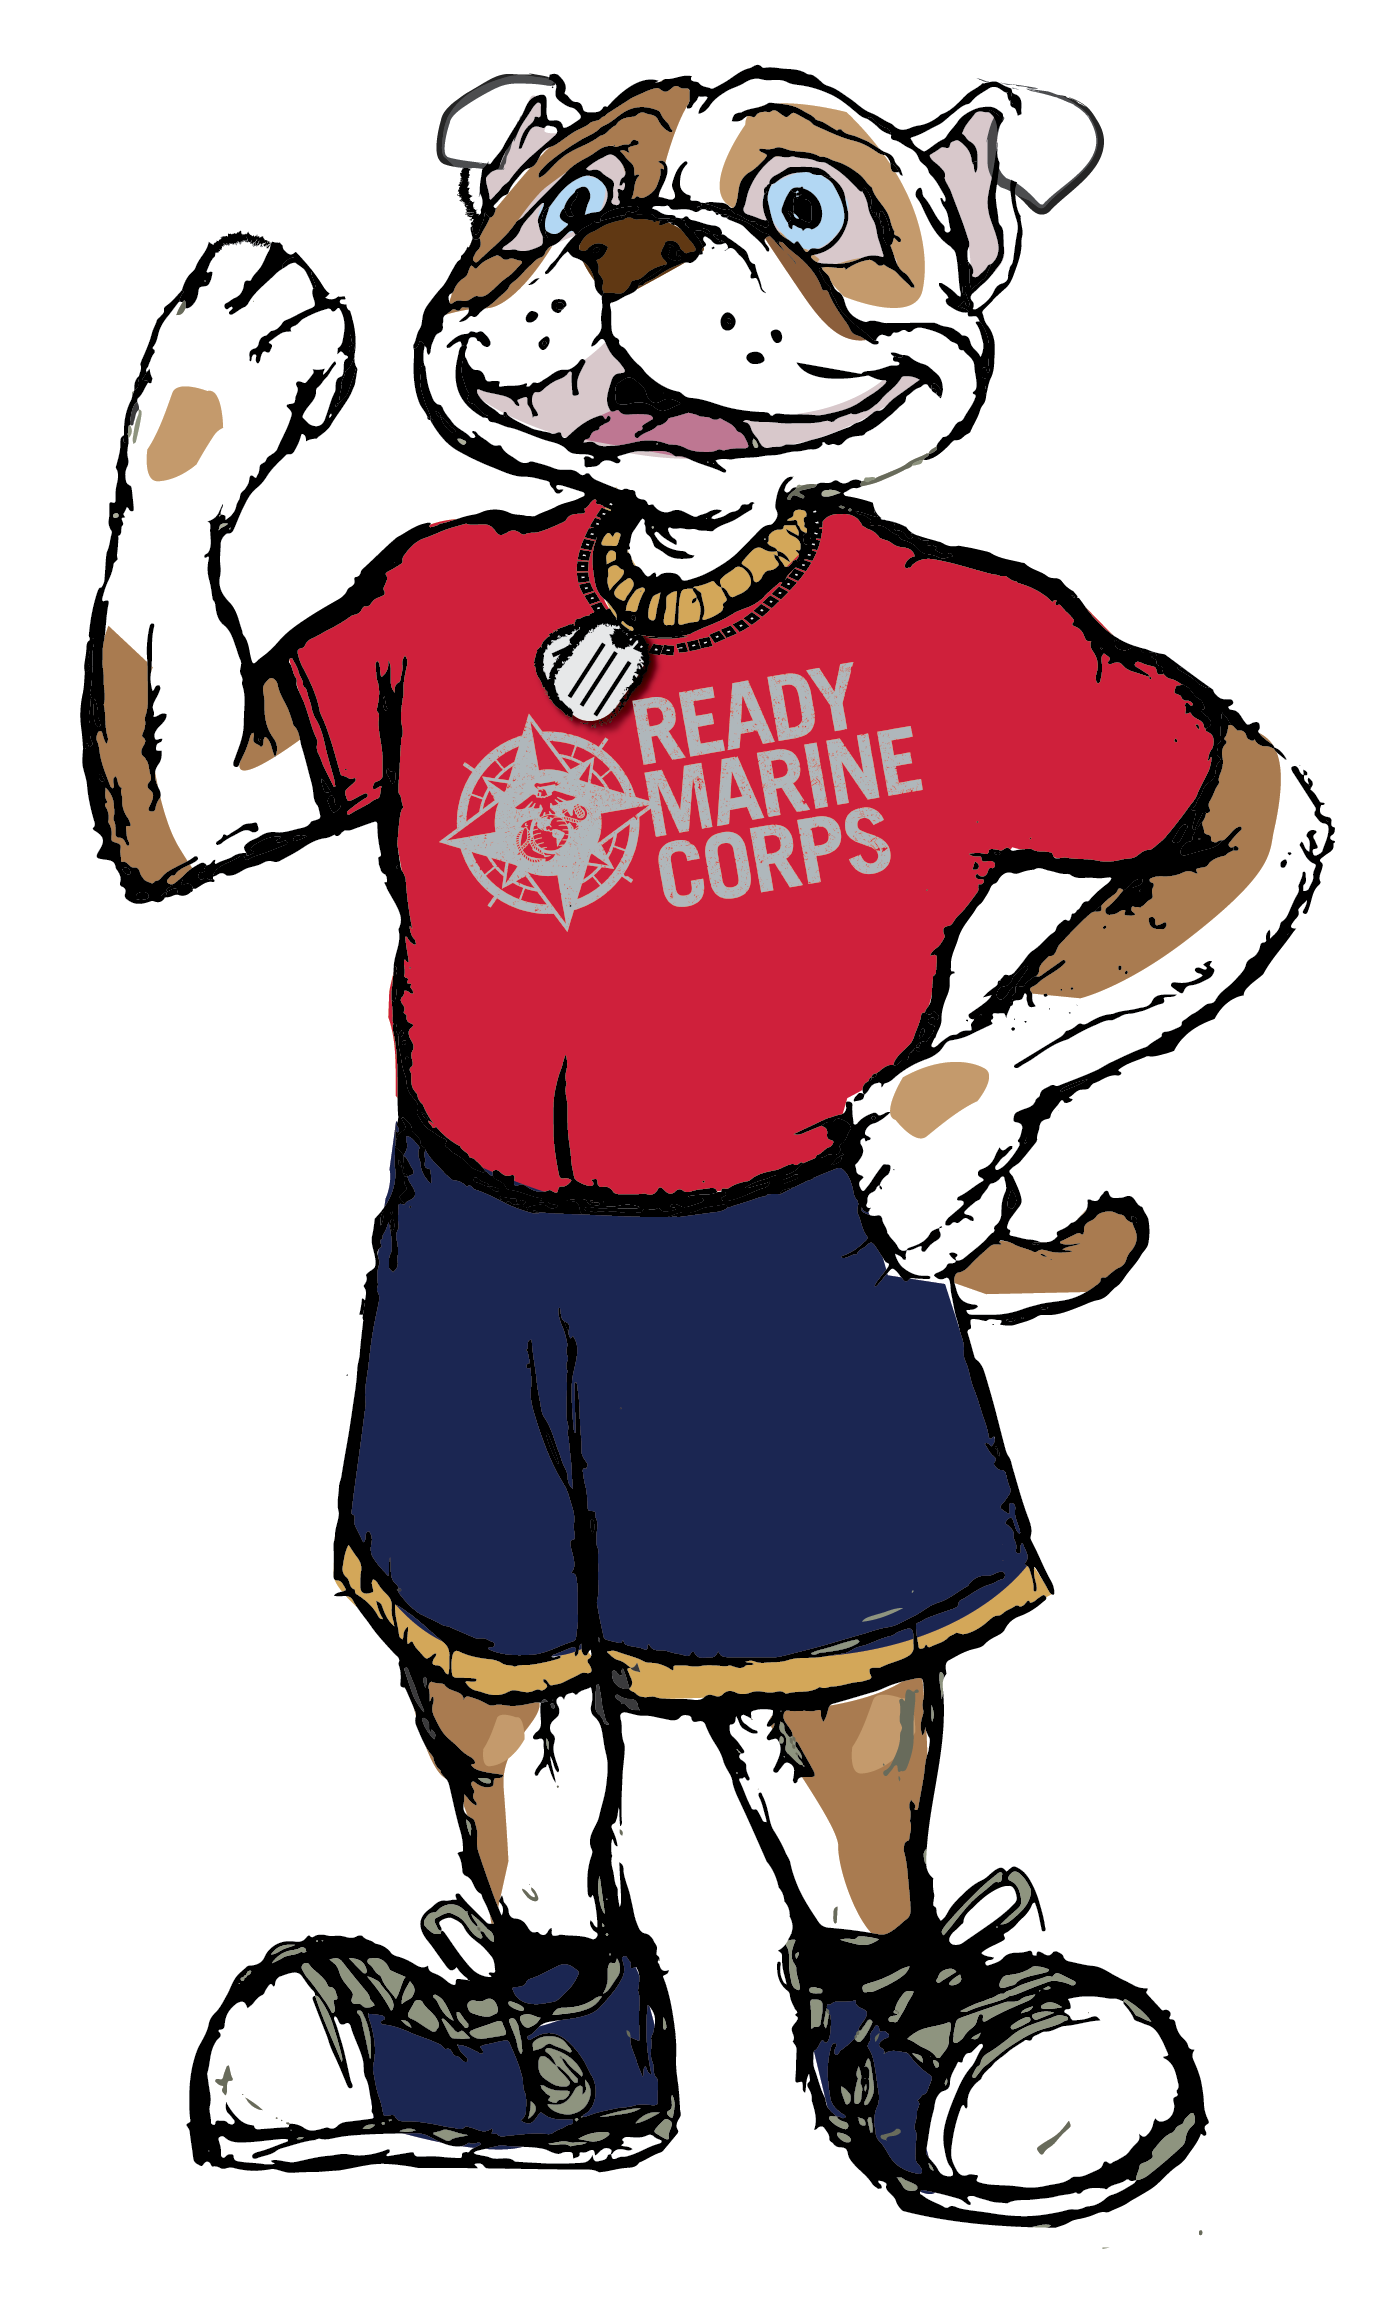 Ready marine corps kids. Democracy clipart kid protest